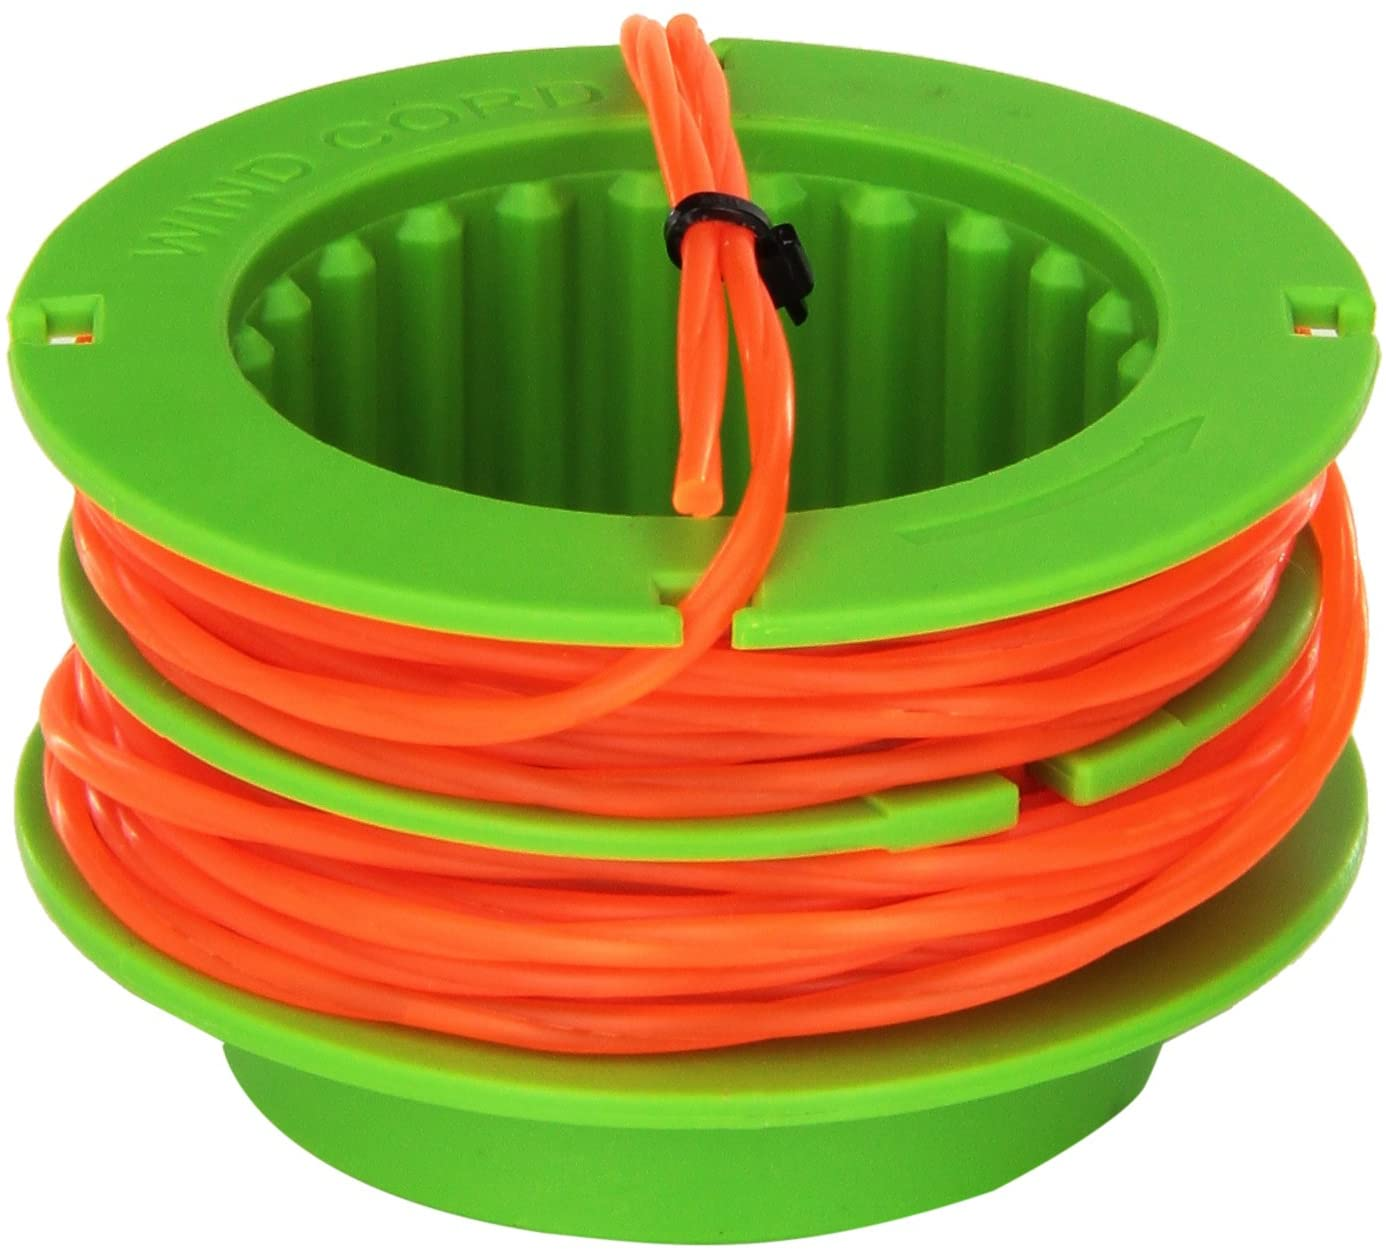 EGO Power+ AS1300 15-Inch Pre-Wound Spool with Line for EGO 15-Inch String Trimmer ST1501-S/ST1500-S